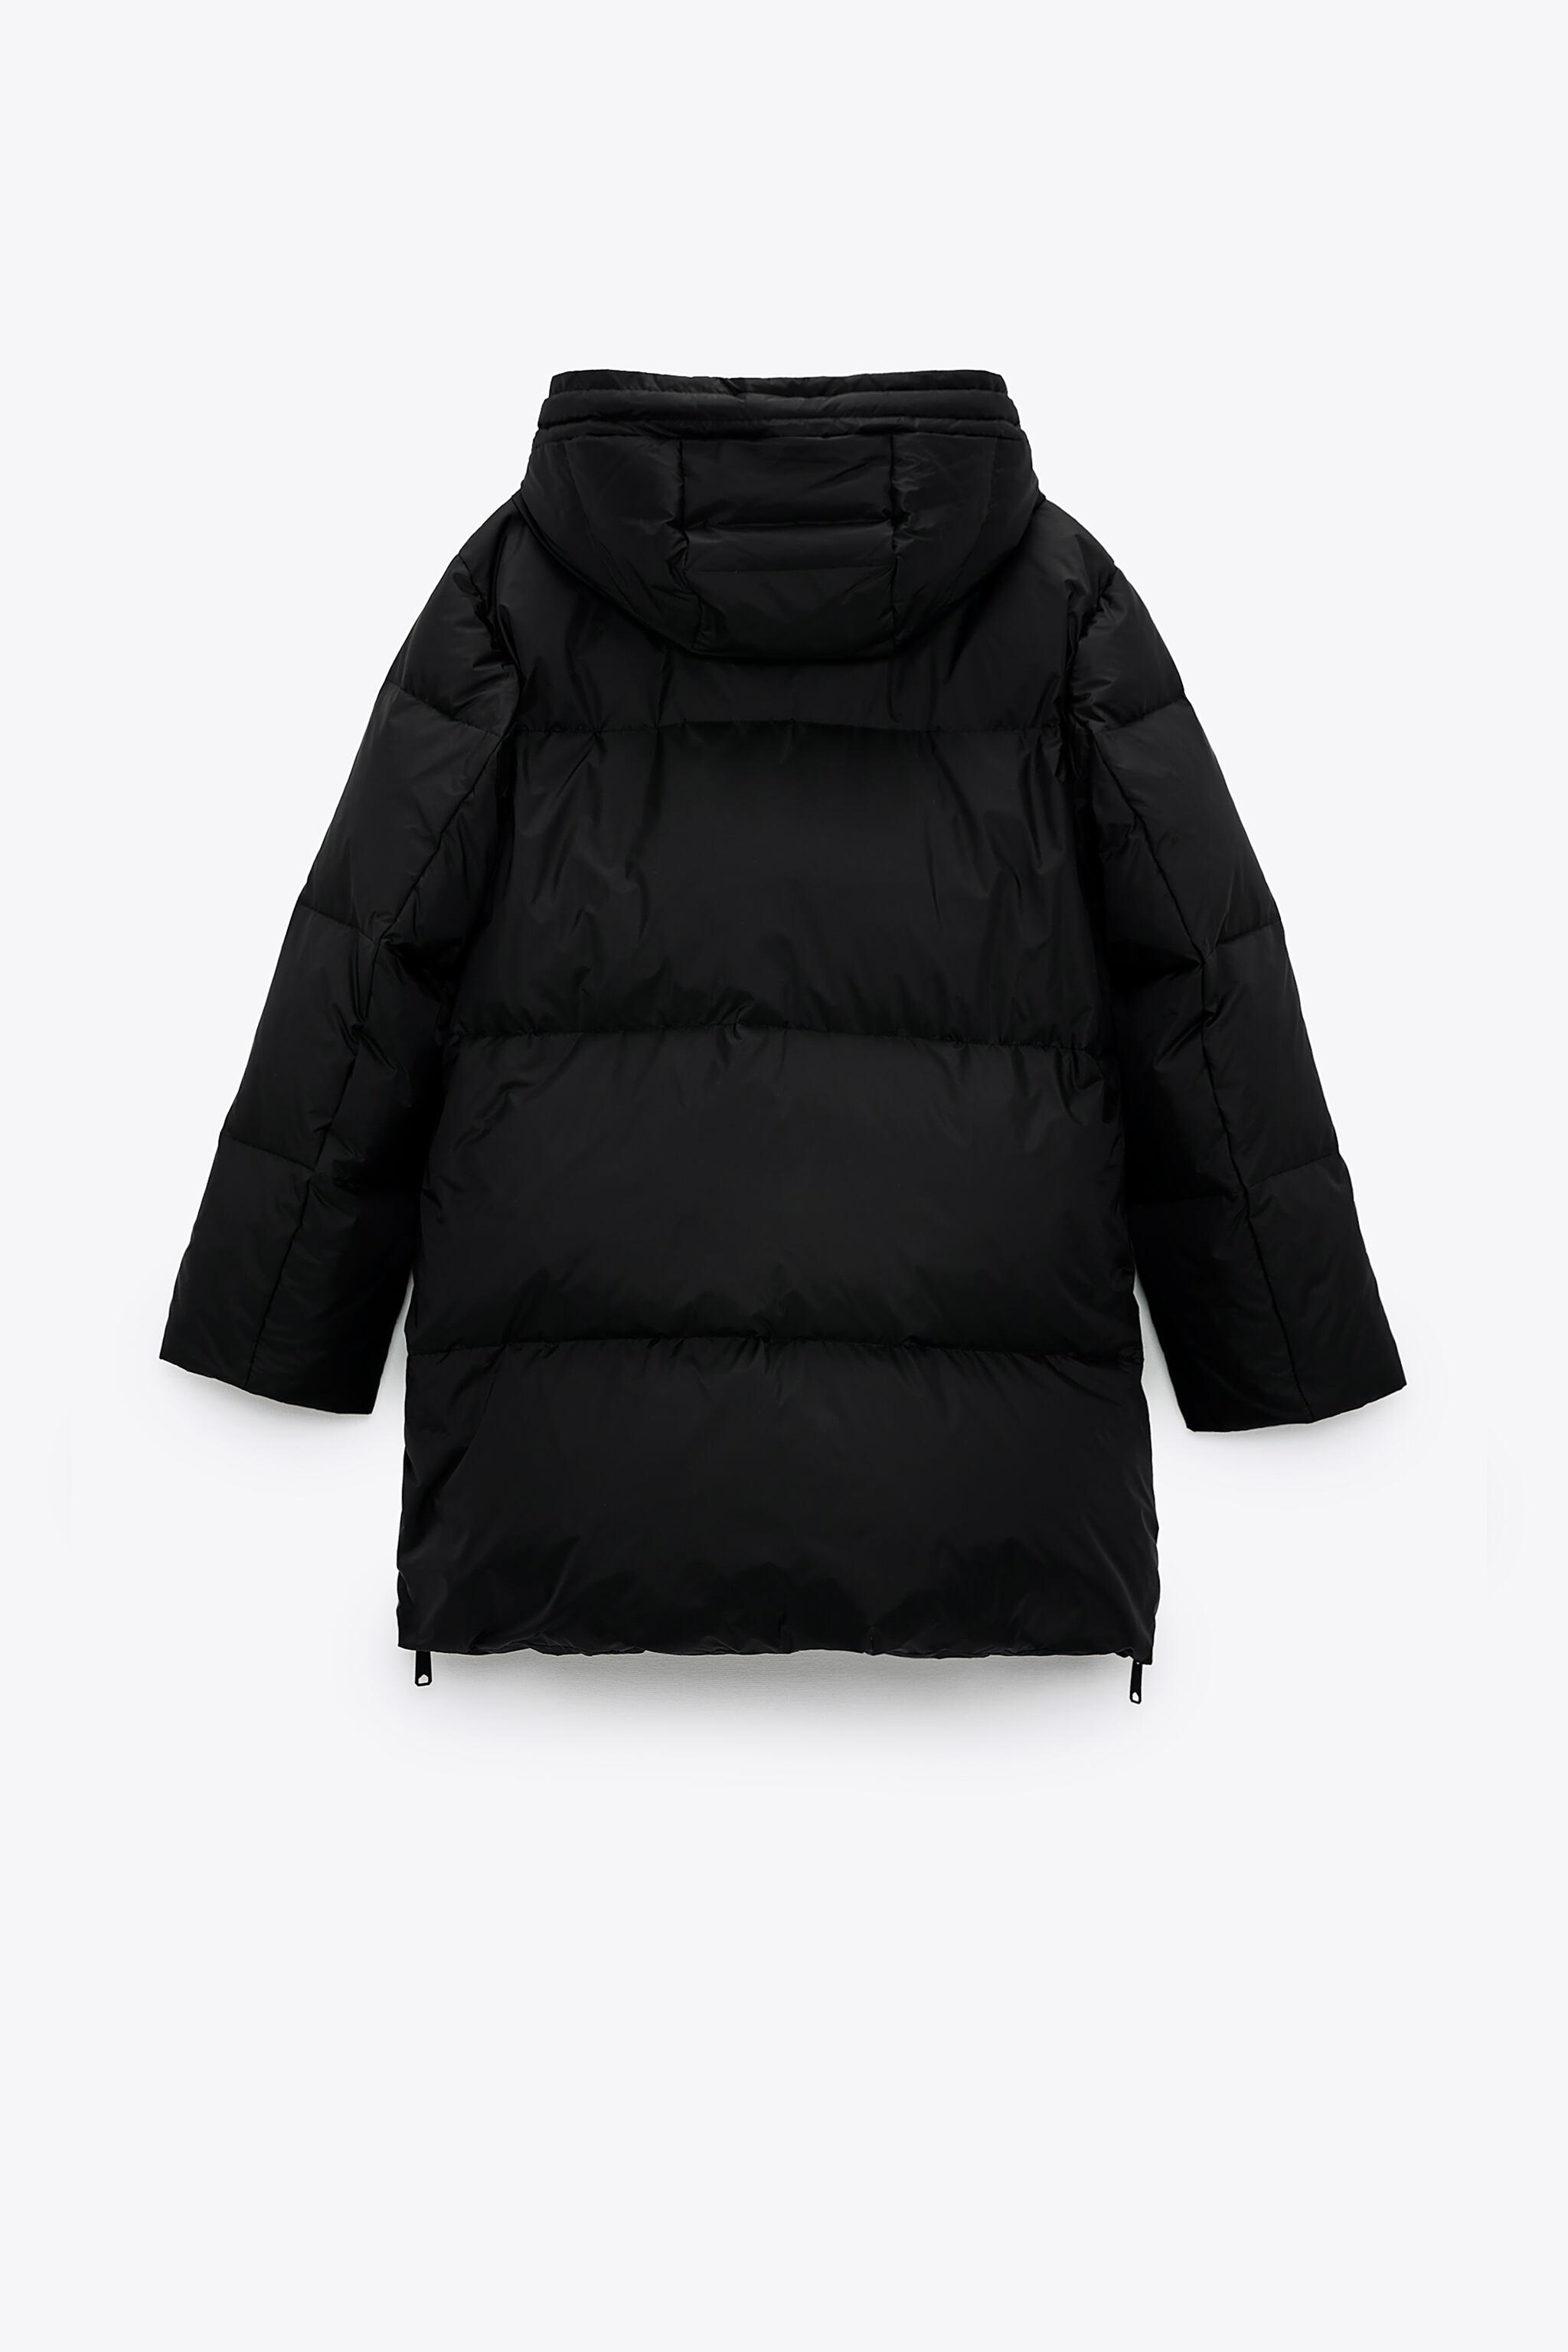 WATER AND WIND PROTECTION OVERSIZED DOWN COAT 7